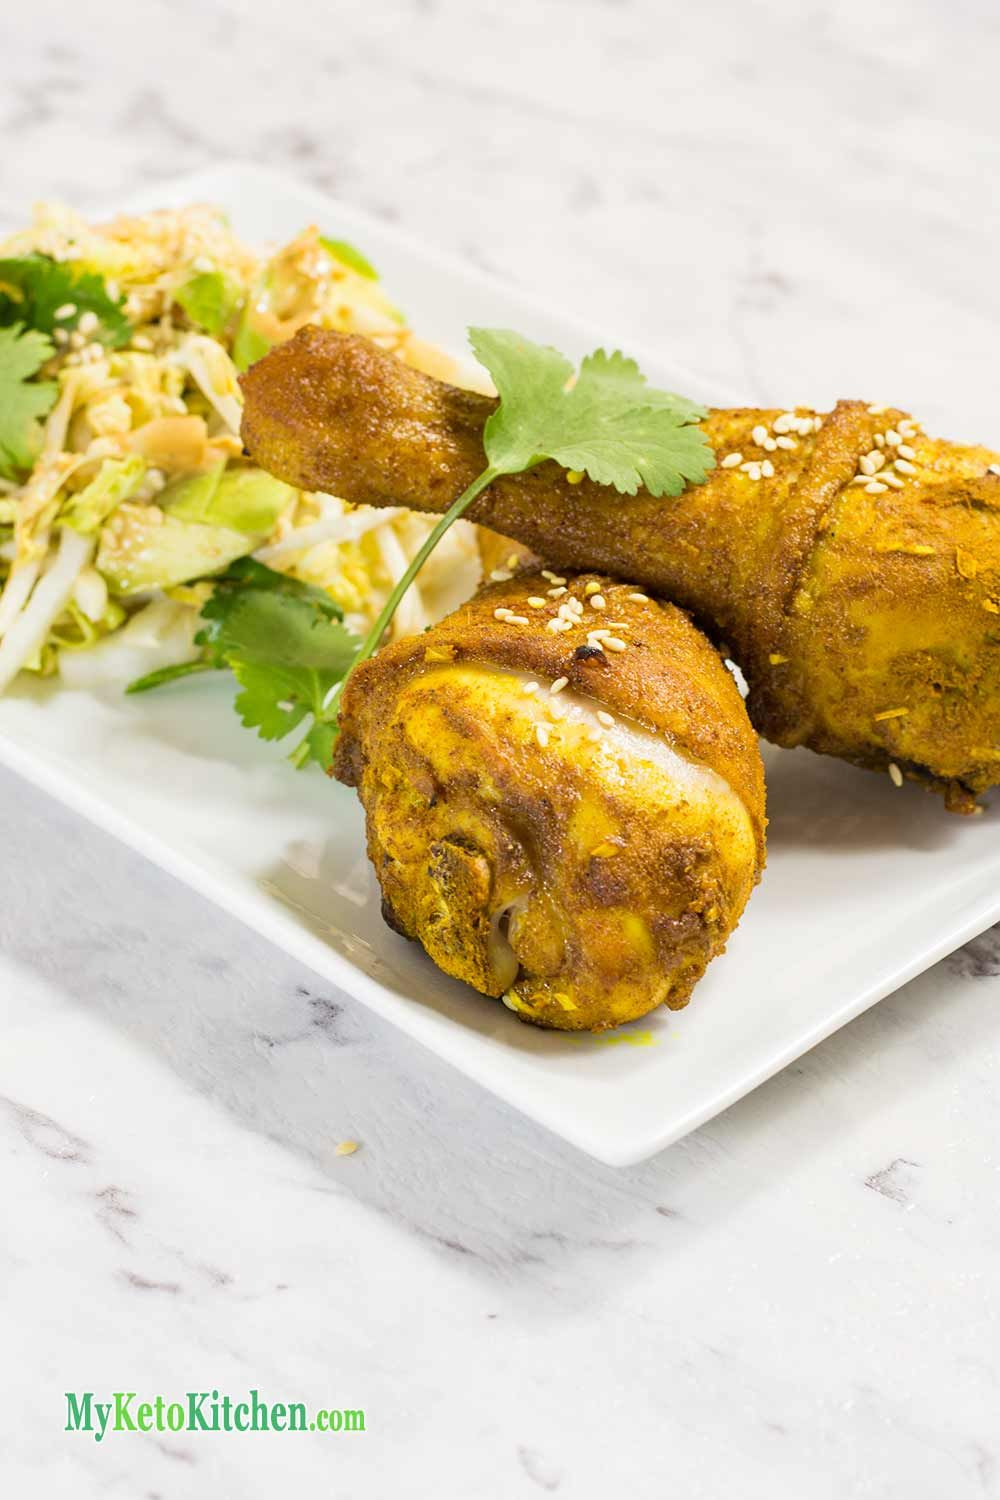 Indonesian Keto Chicken Drumsticks Deliciously Herbed